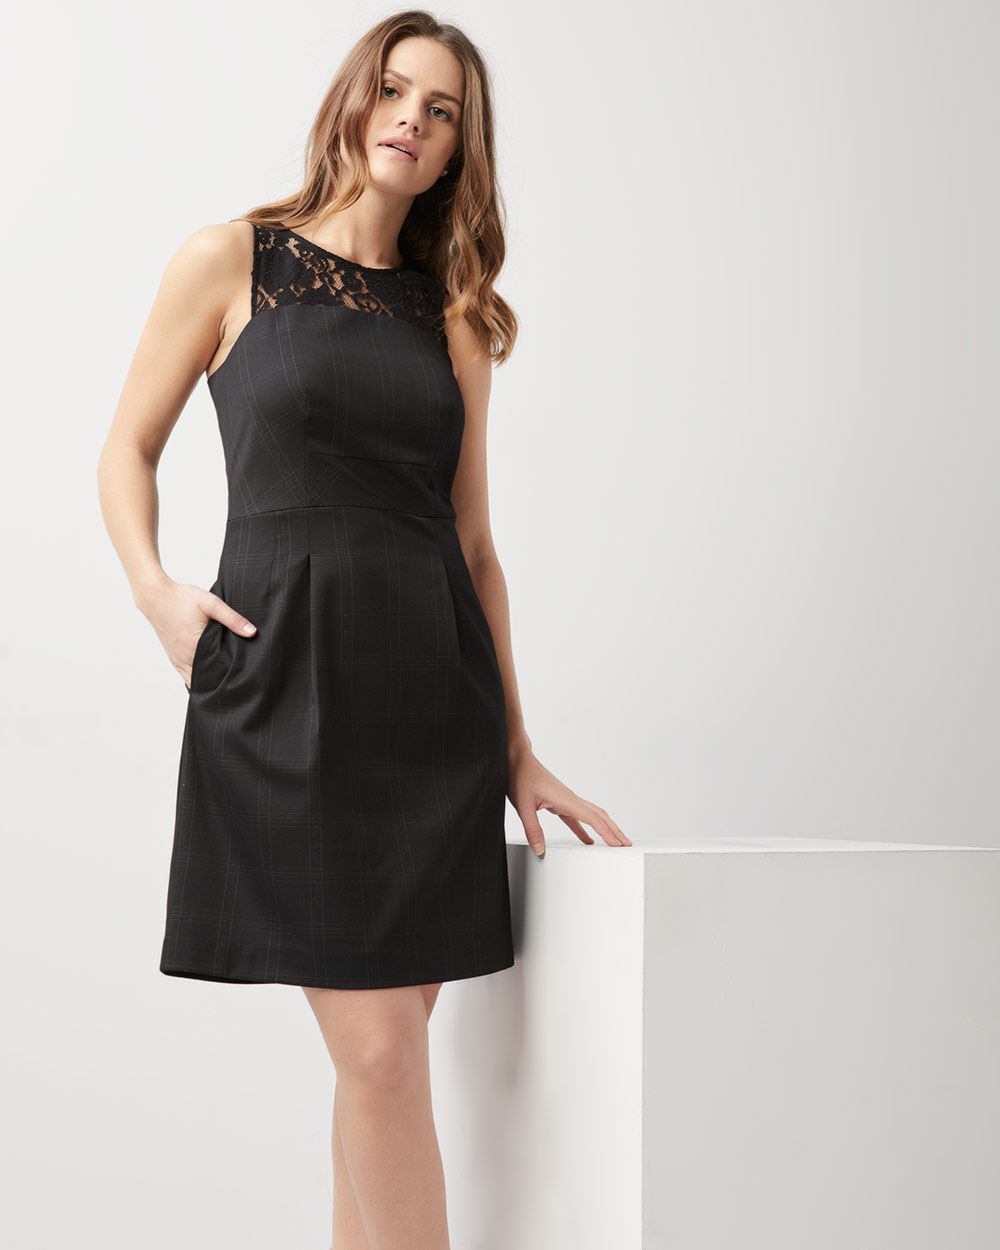 ab0bc5c33c Lurex plaid fit and flare dress with lace